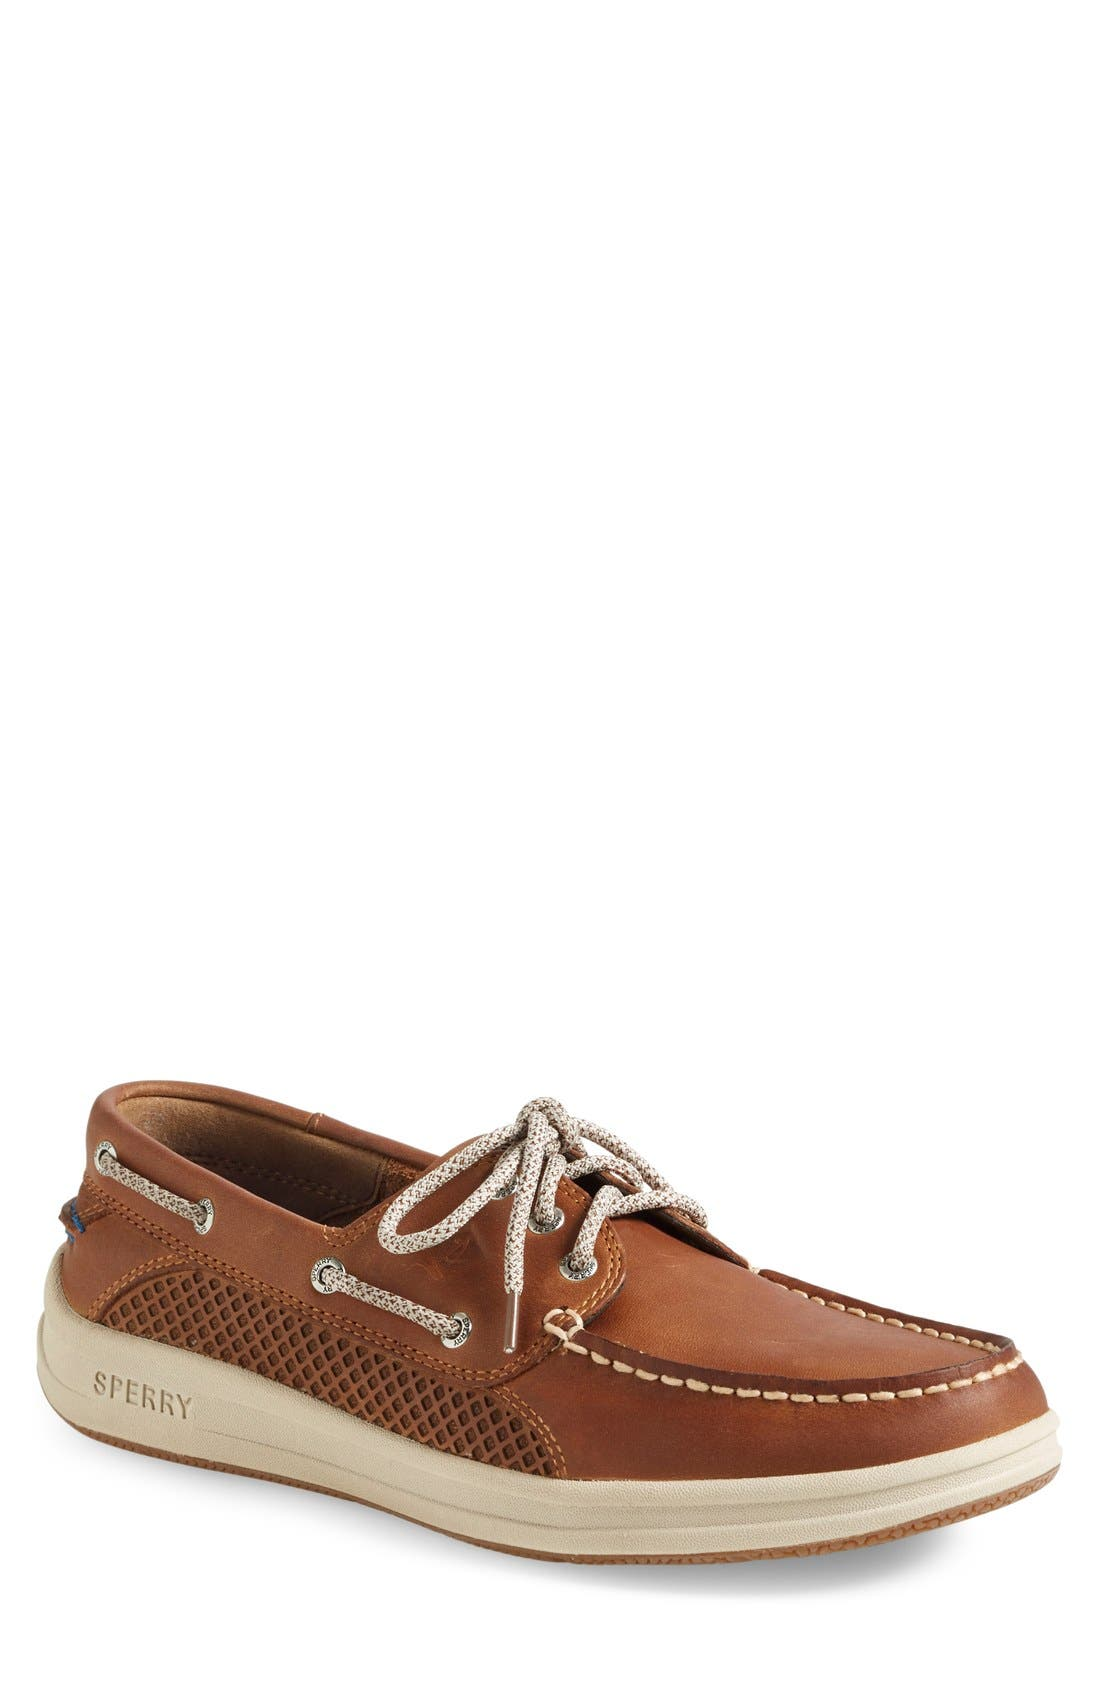 Sperry | 'Gamefish' Boat Shoe